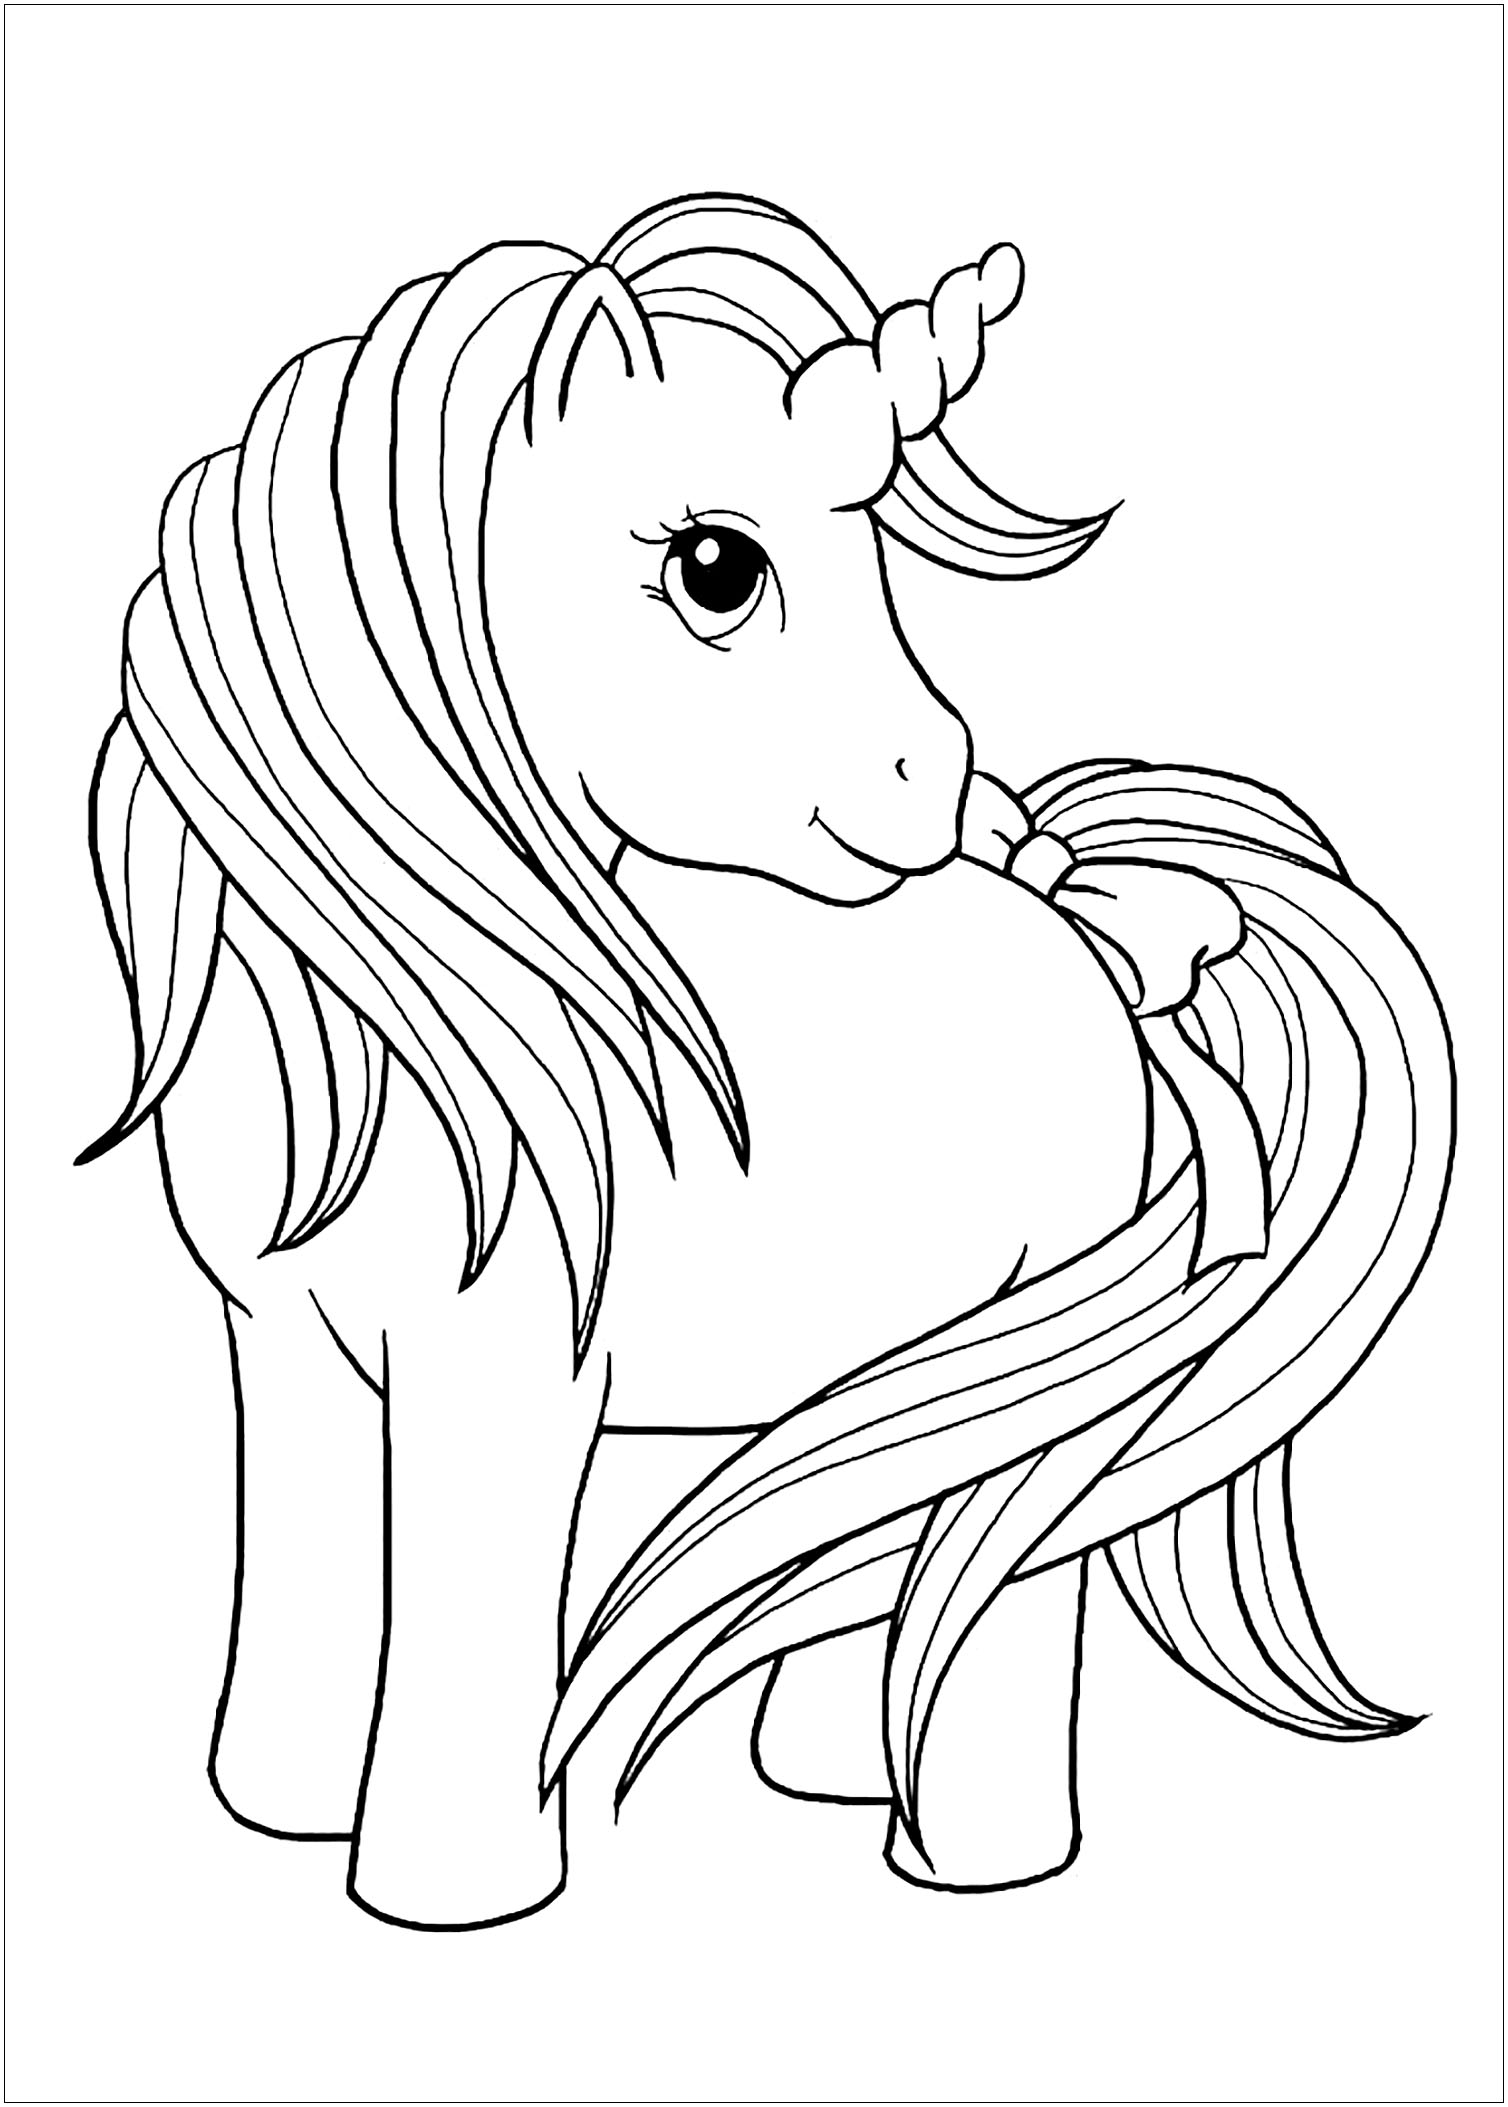 coloring unicorn kids drawing downloadable unicorn colouring page michael o39mara books kids coloring drawing unicorn